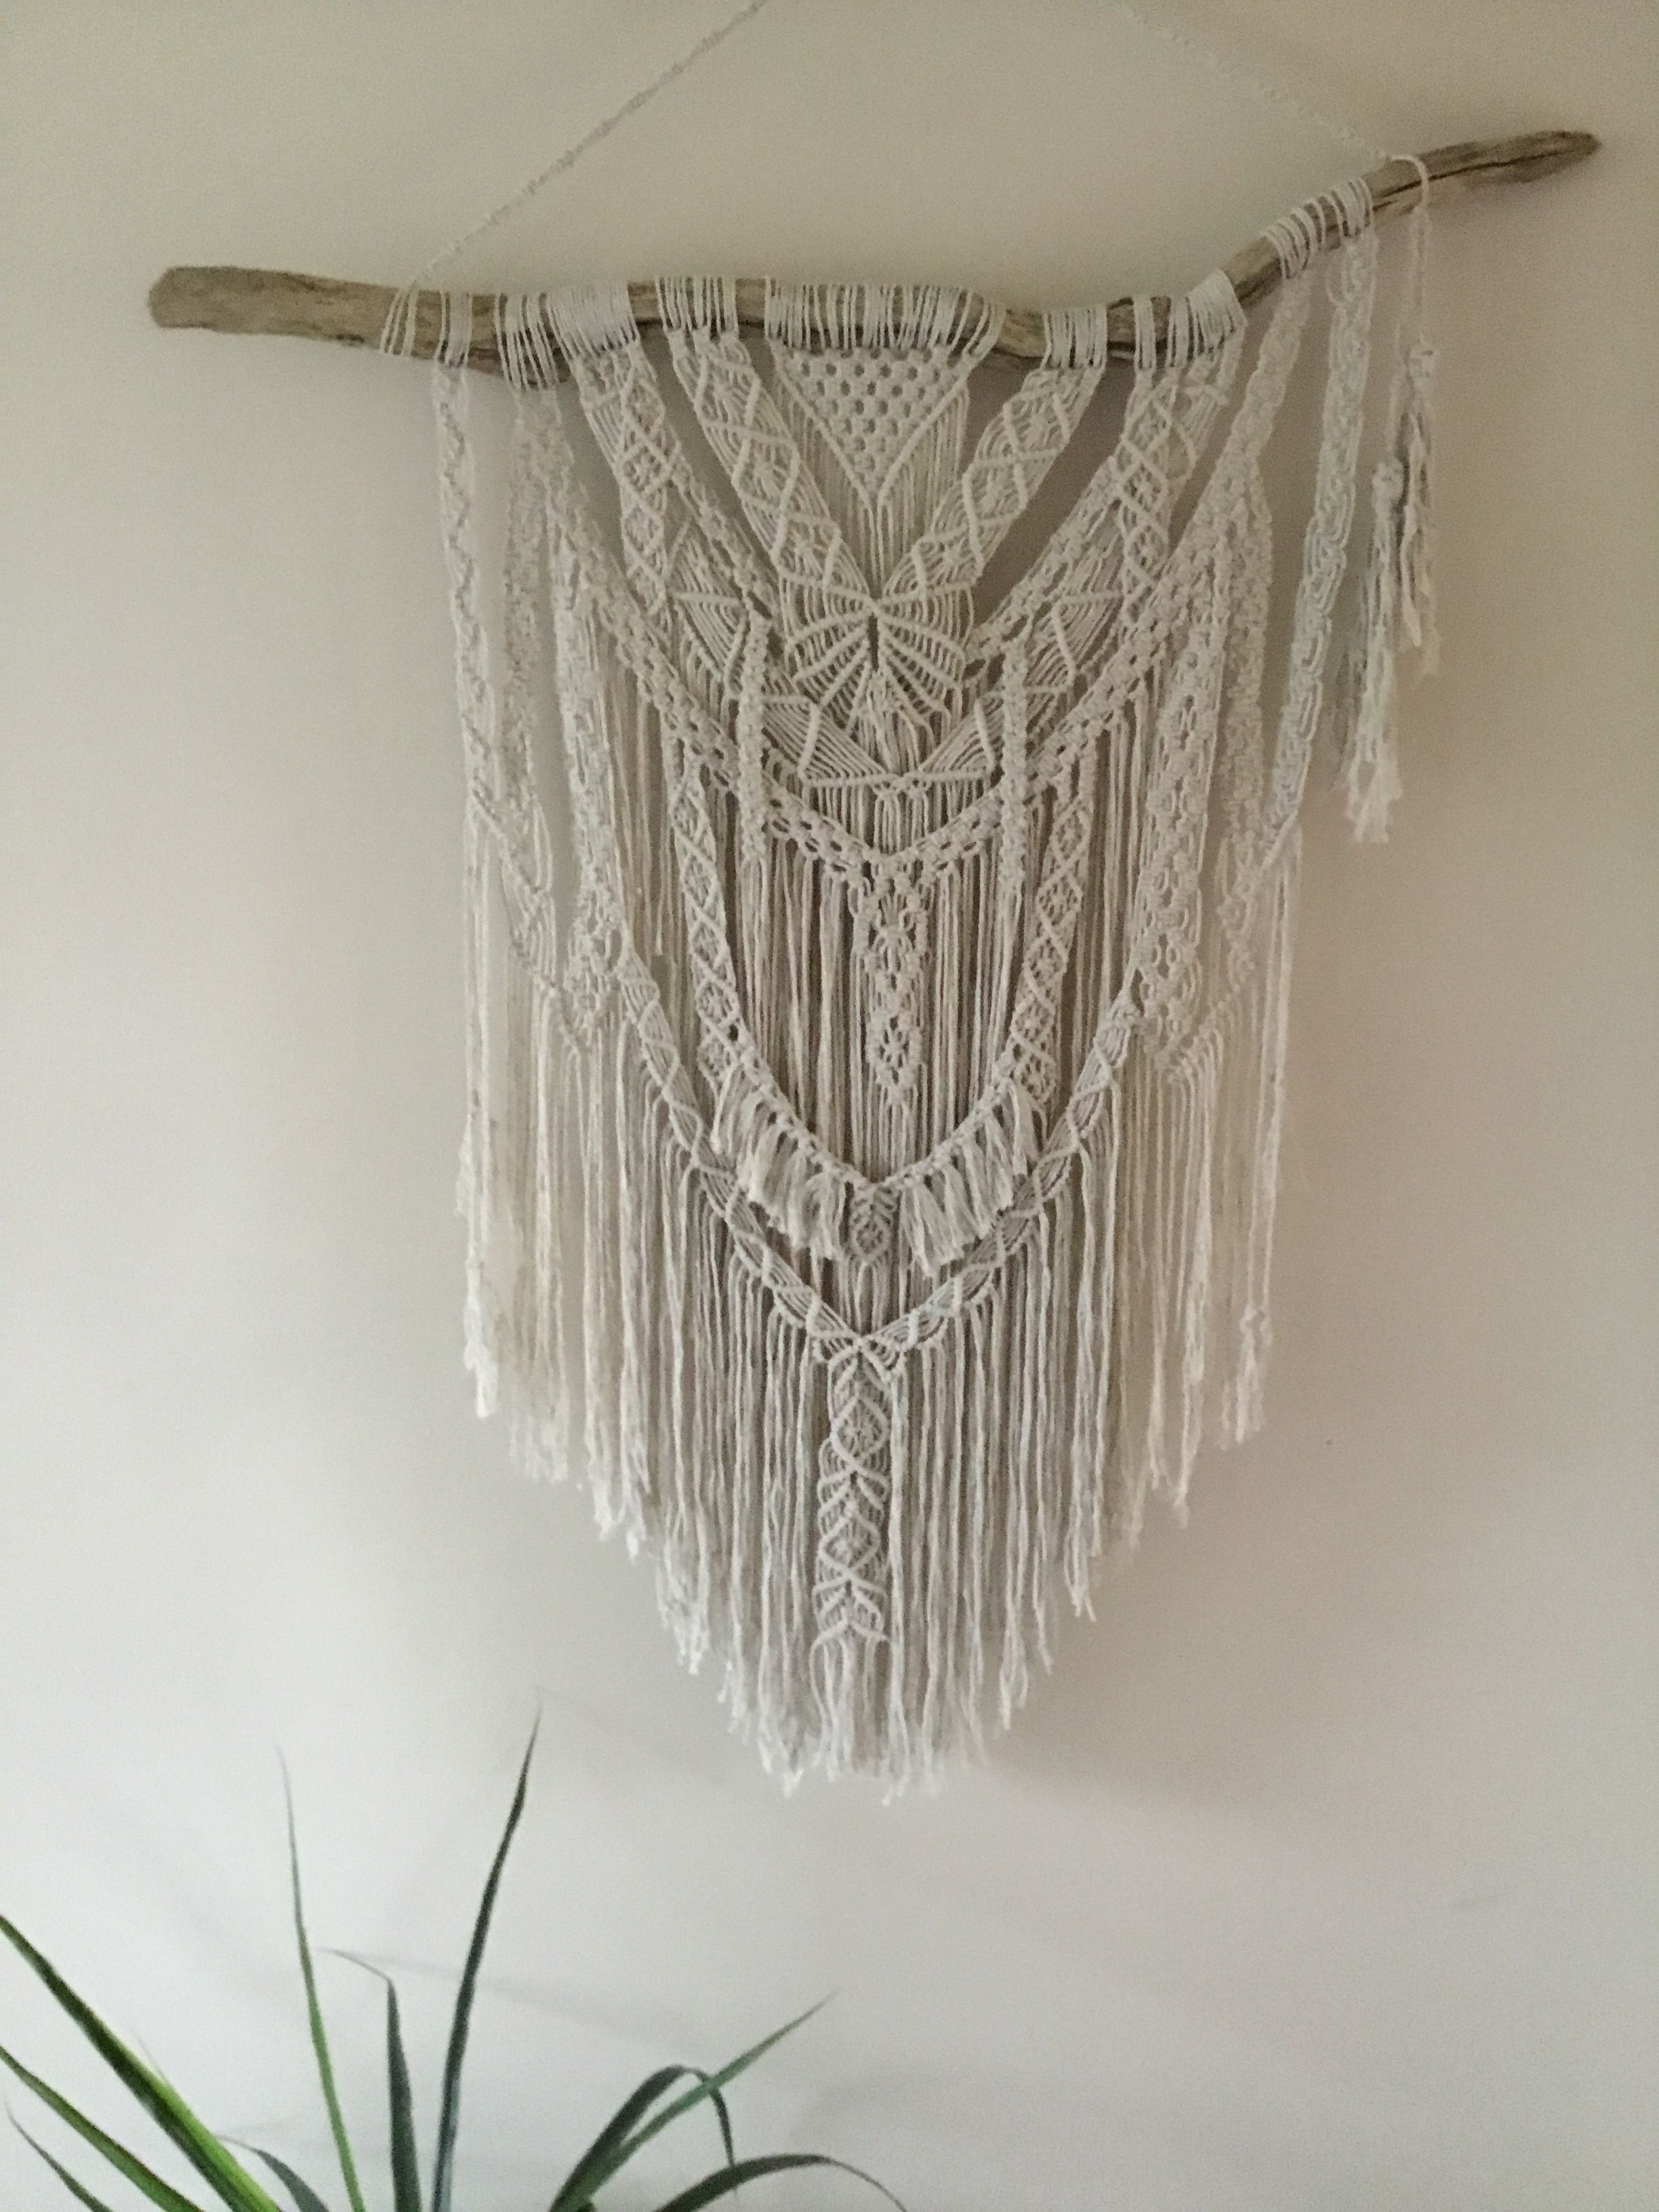 Large Boho Macrame Wall Hanging made in New Zealand by